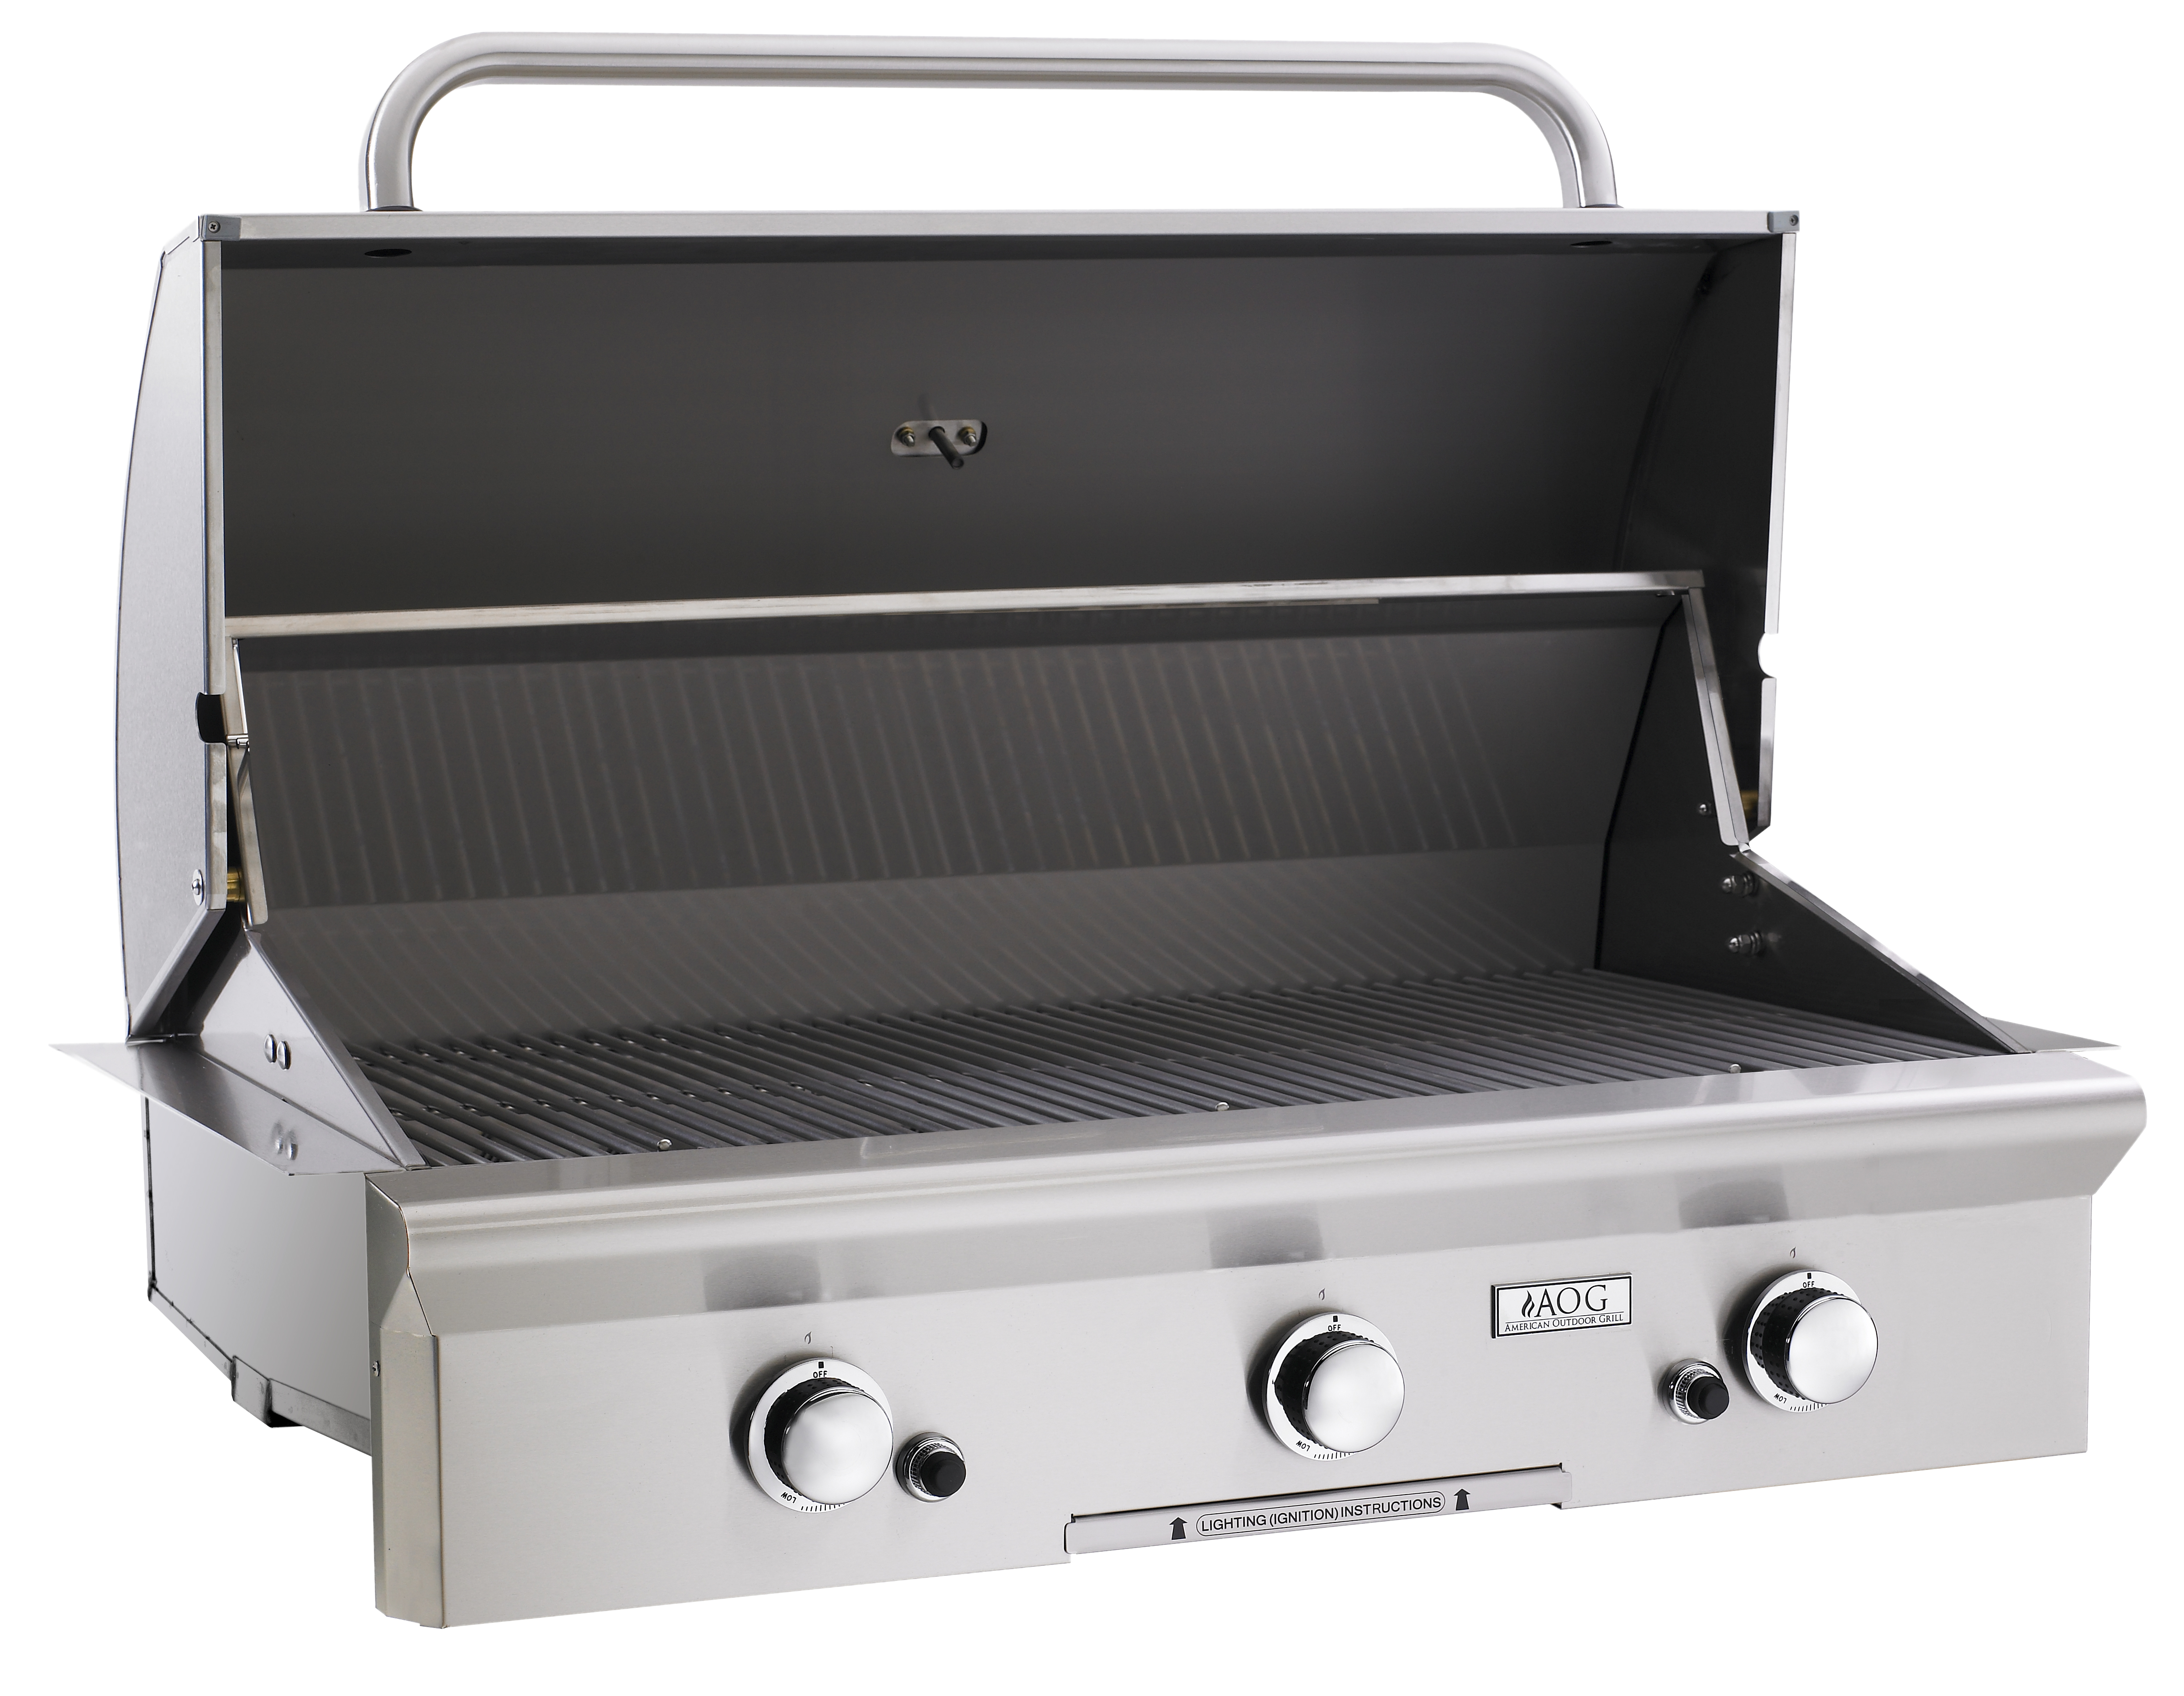 Aog Grill 36 Inch Build In Gas Fireside Outdoor Kitchens